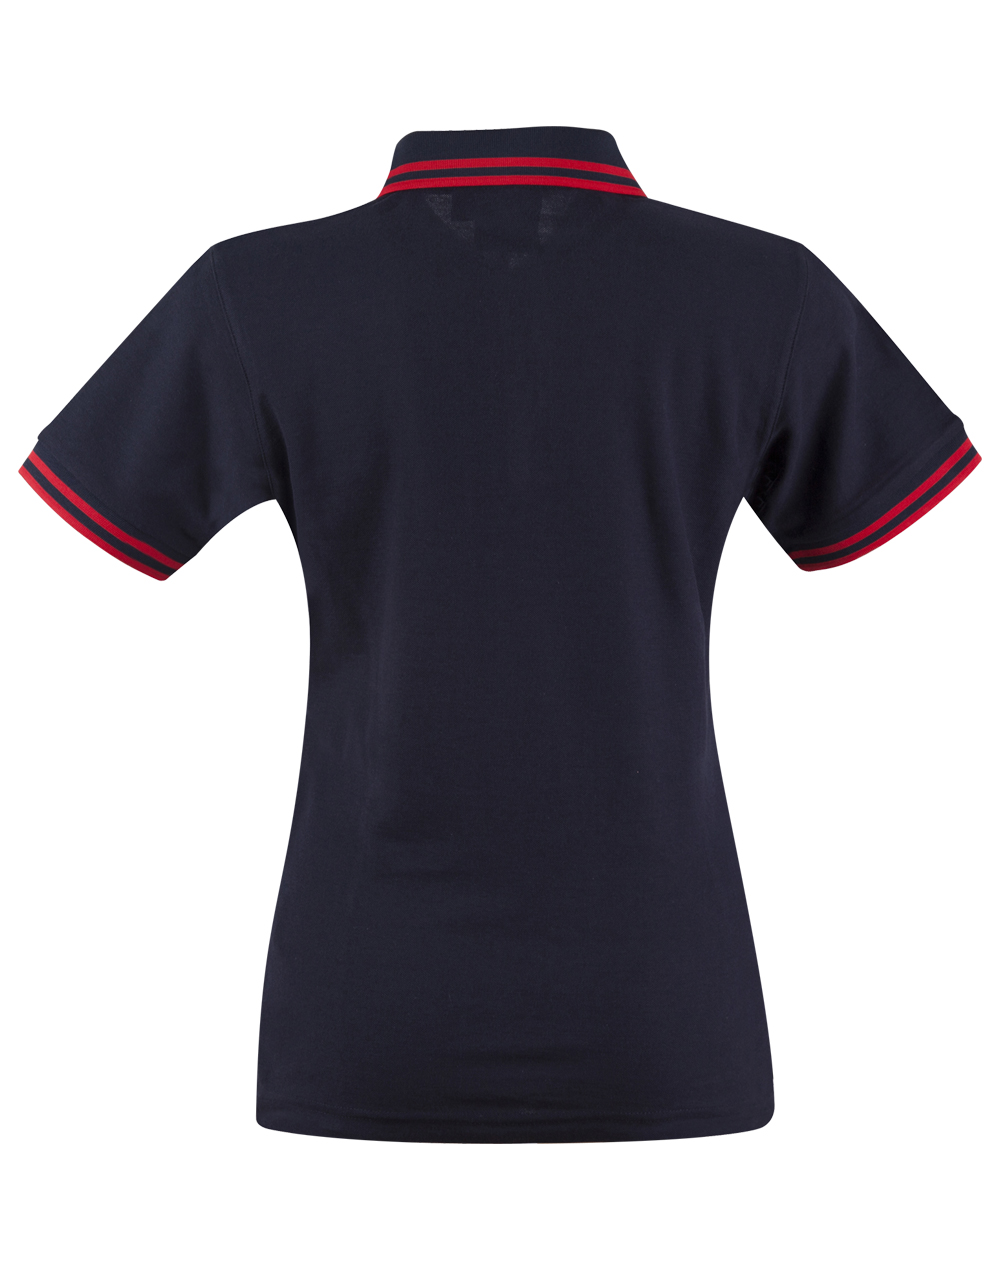 https://s3-ap-southeast-1.amazonaws.com/ws-imgs/POLOSHIRTS/PS66_NavyRed_Back.jpg